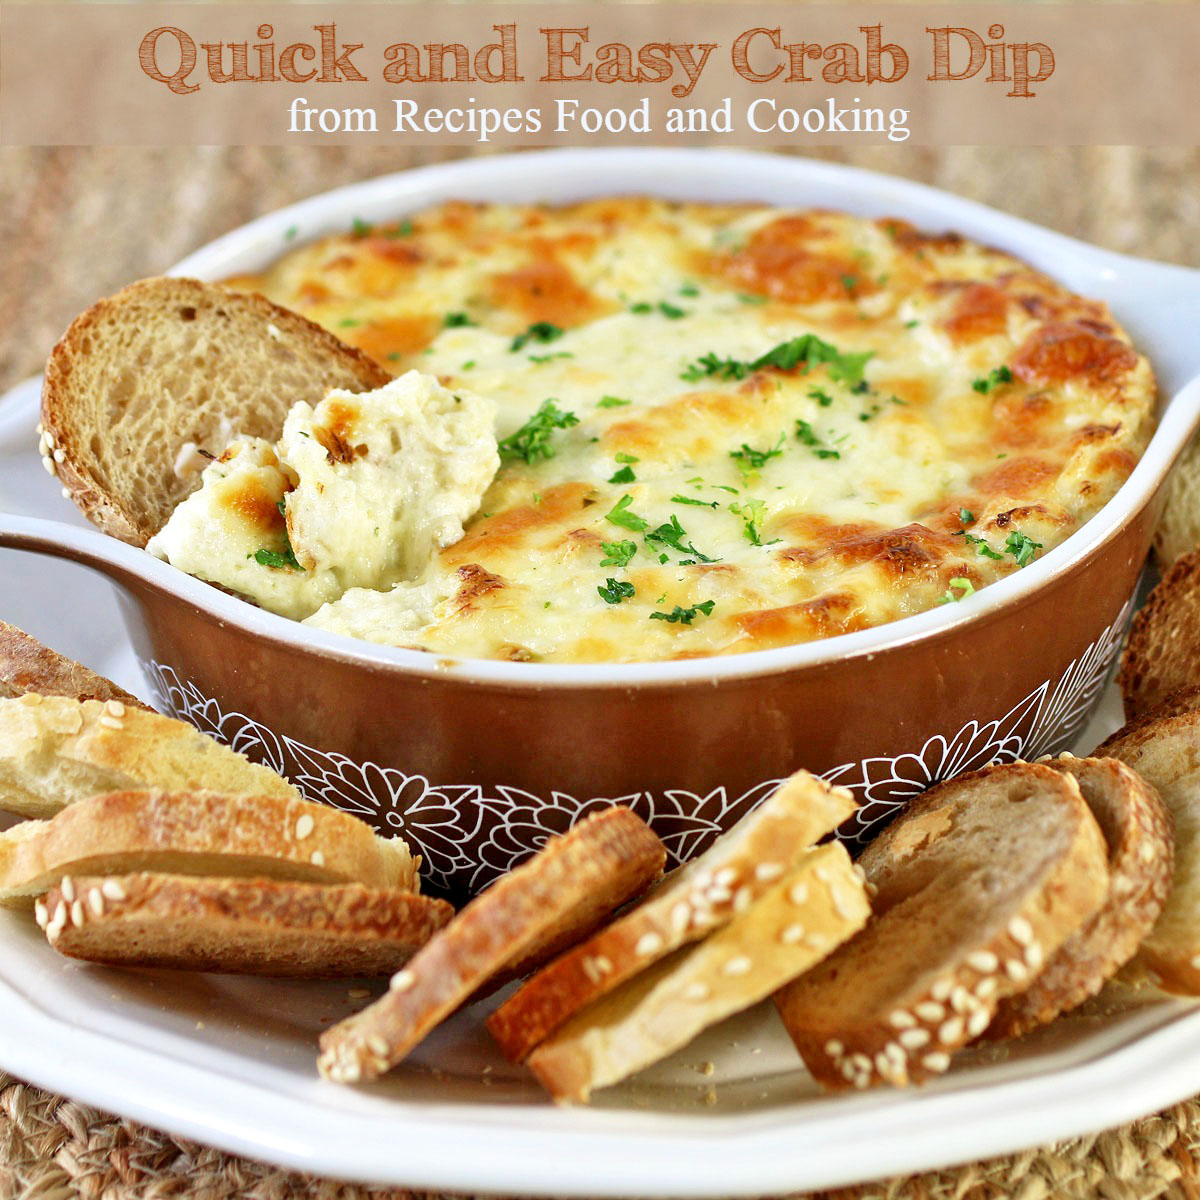 Easy And Quick Crab Dip Recipes Food And Cooking